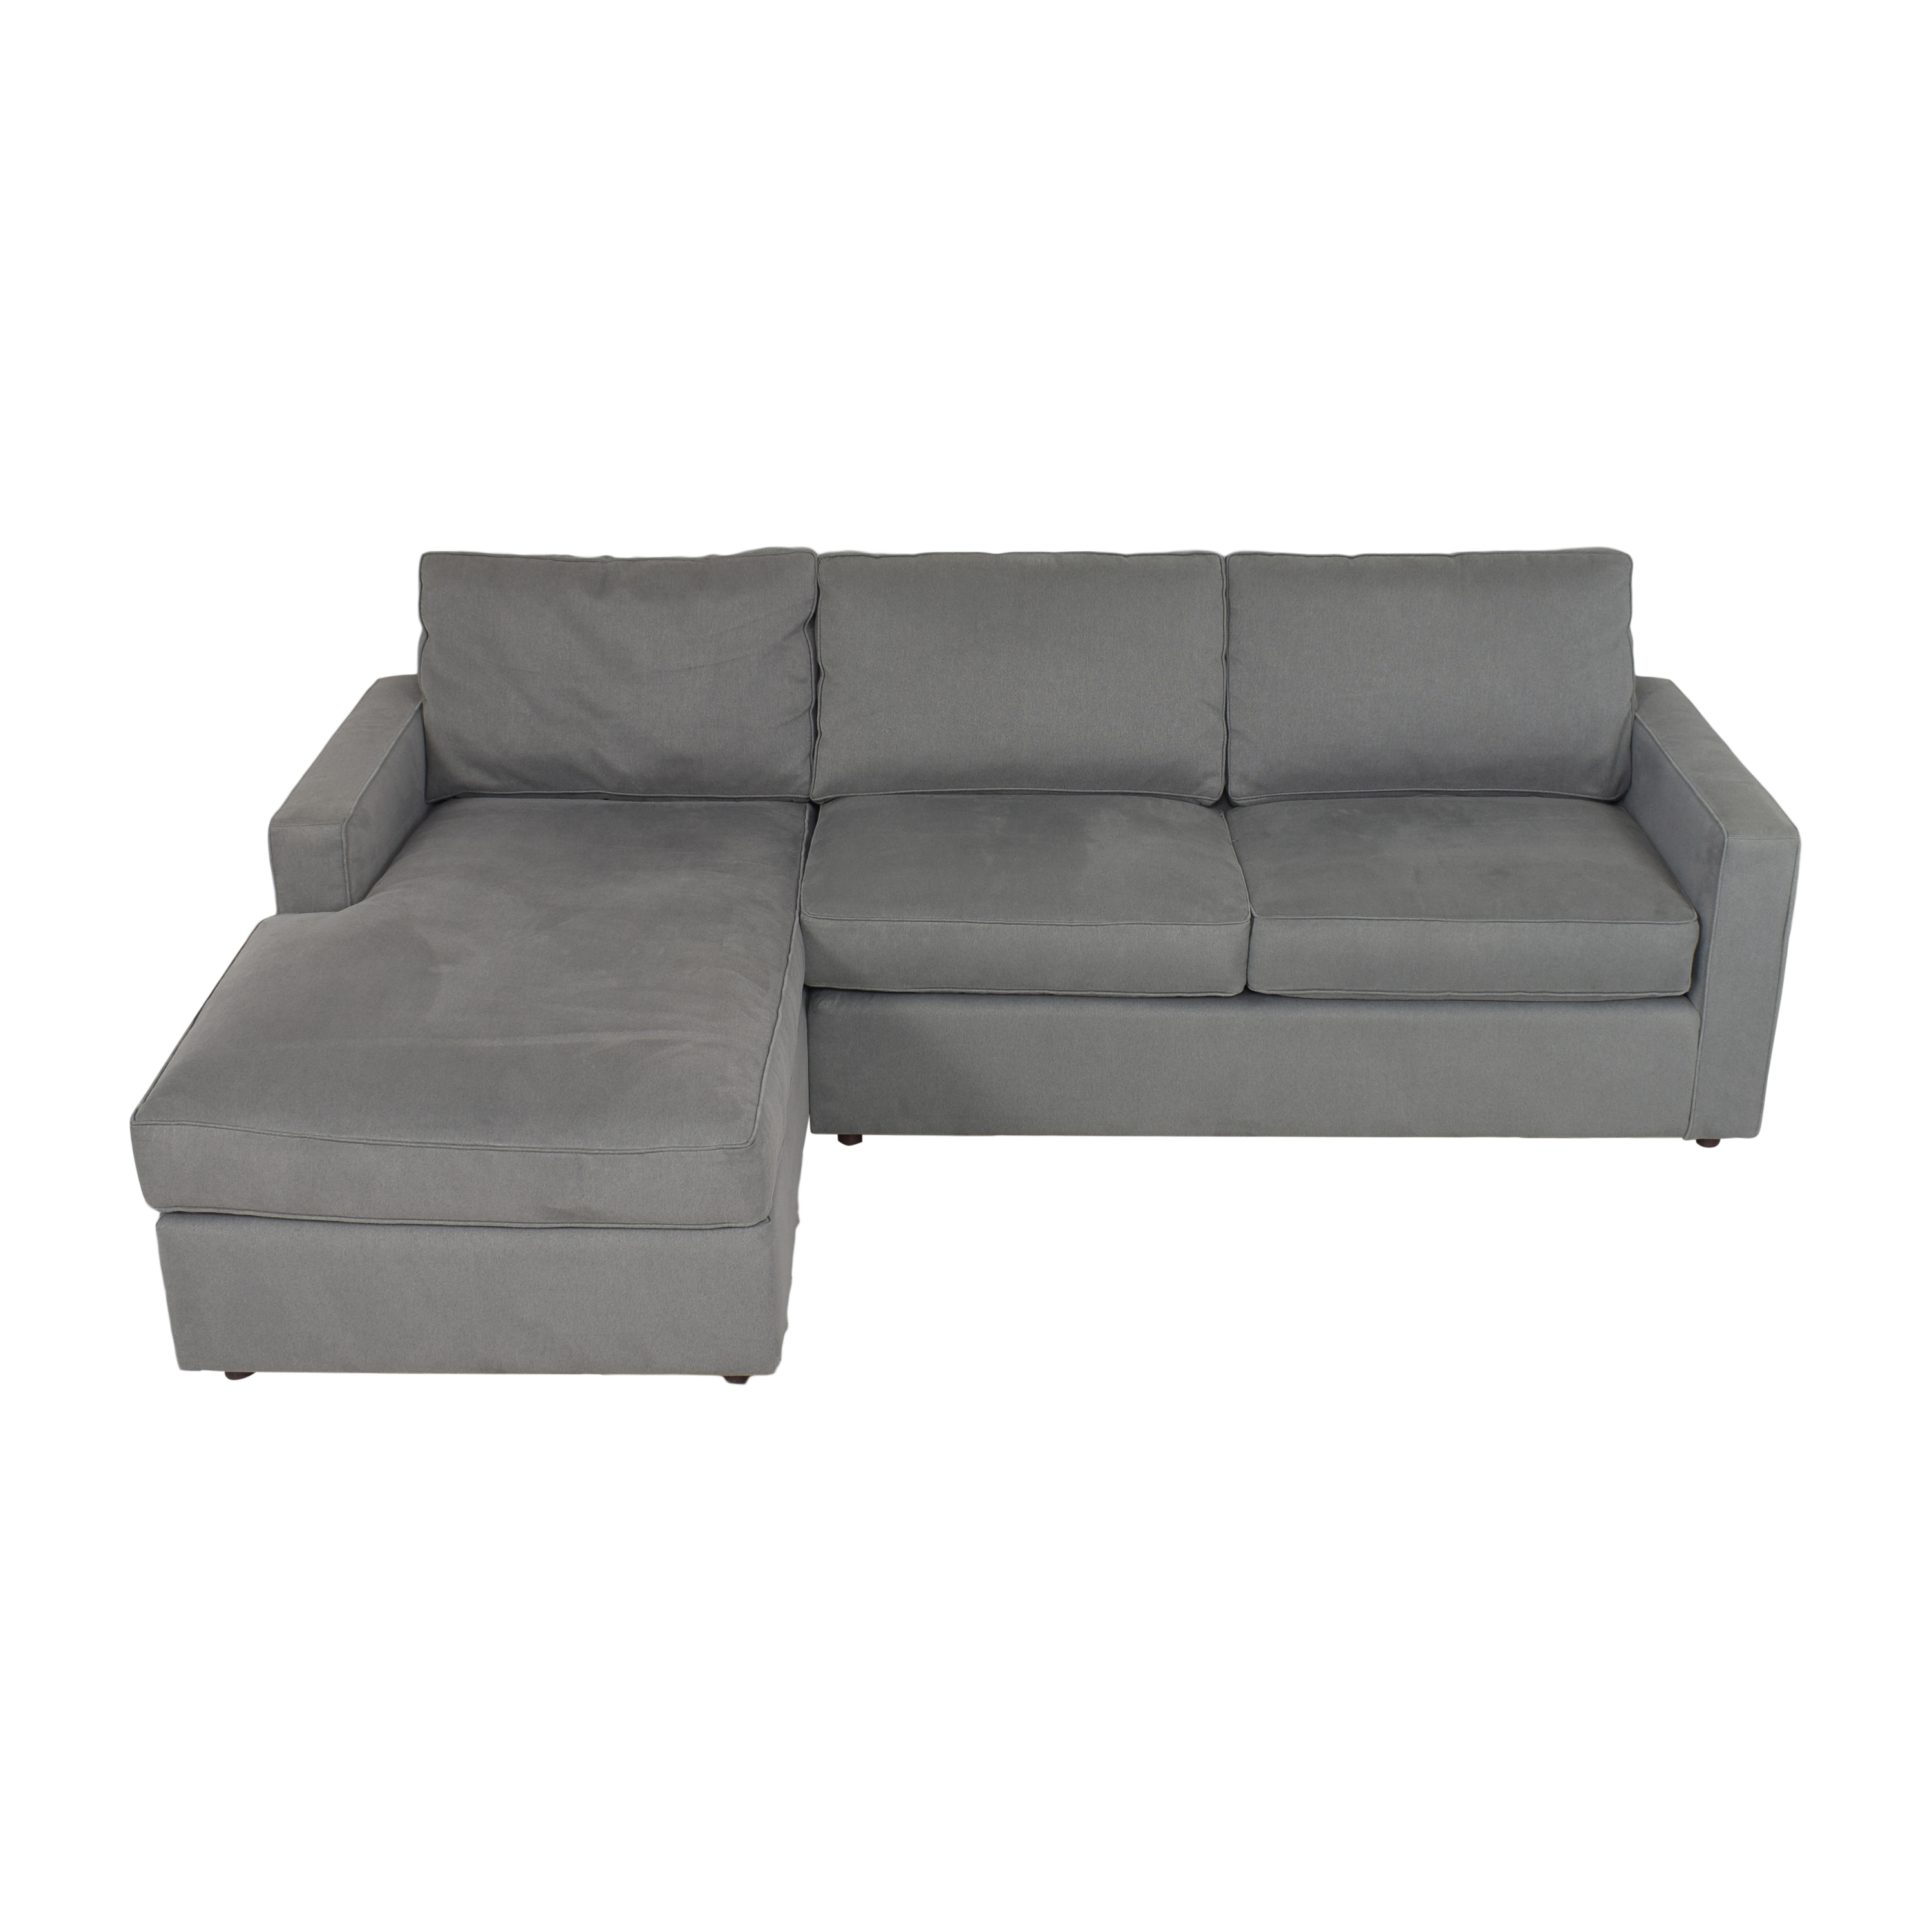 Room & Board Room & Board York Chaise Sectional Sofa ct